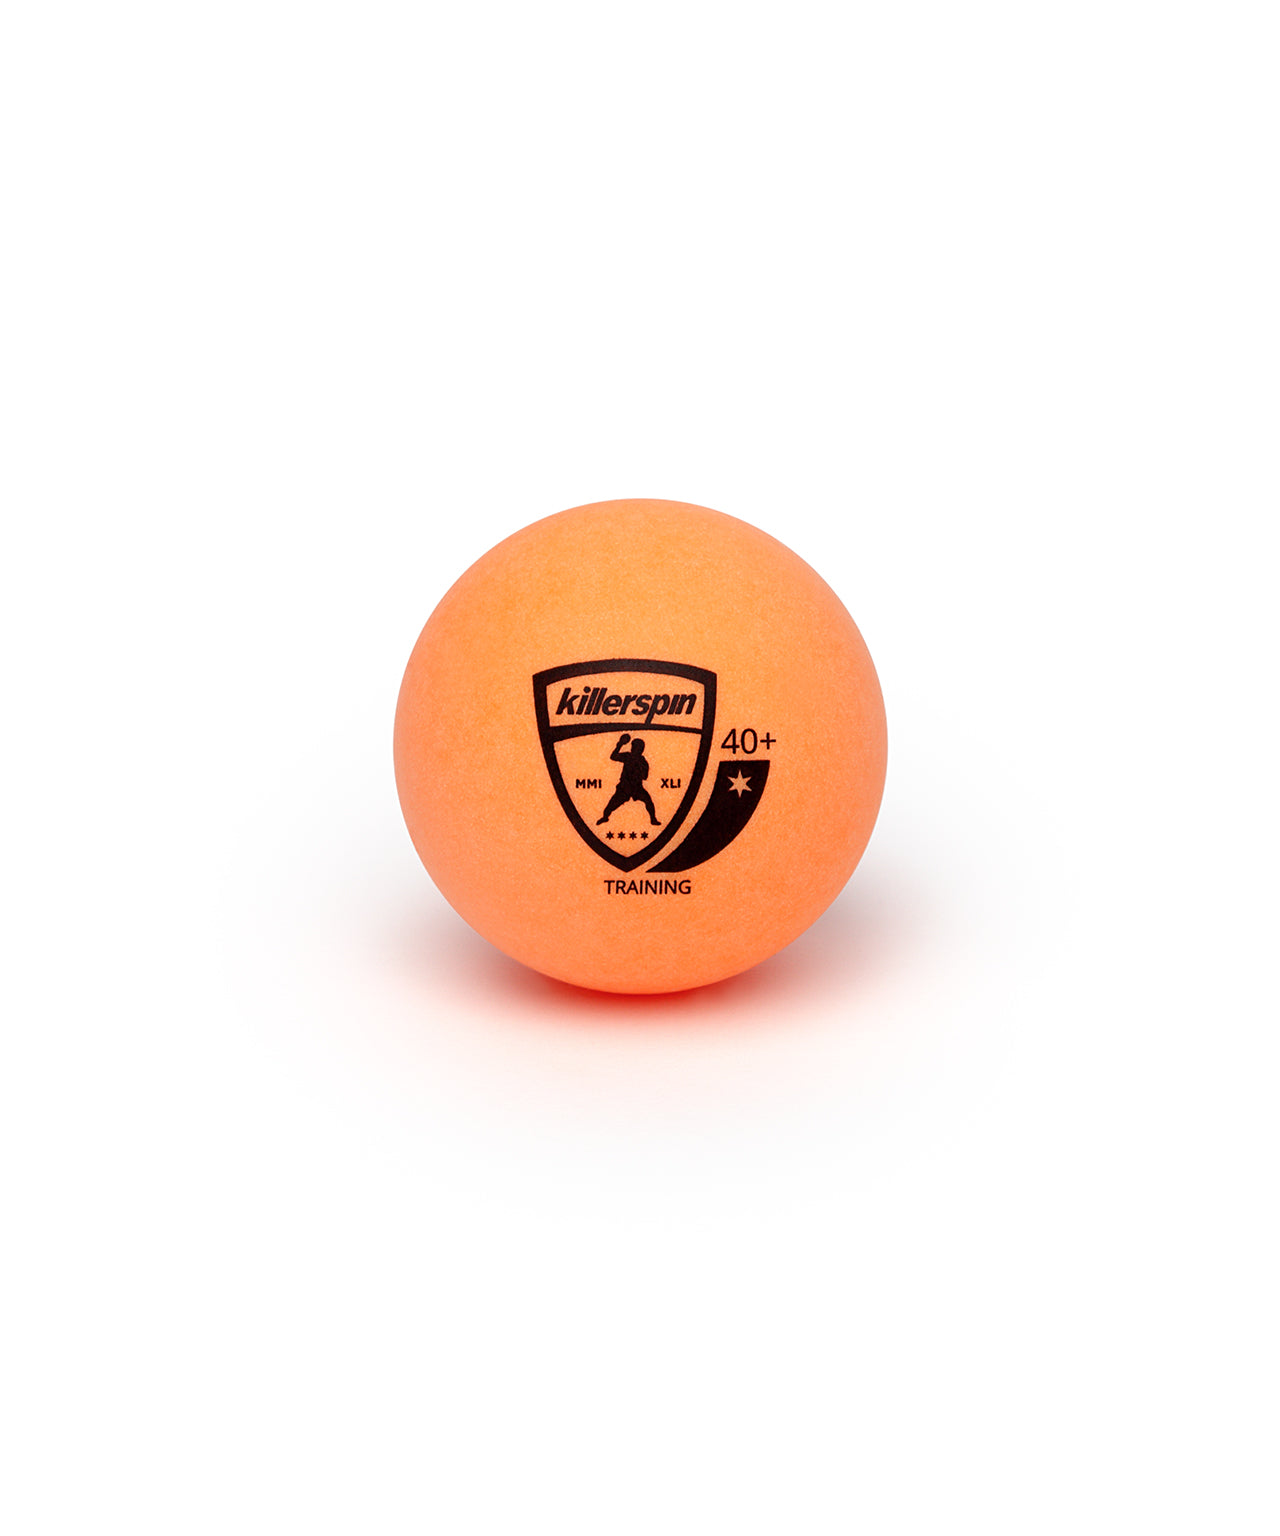 Killerspin Training Ping Pong Orange Balls - Logo